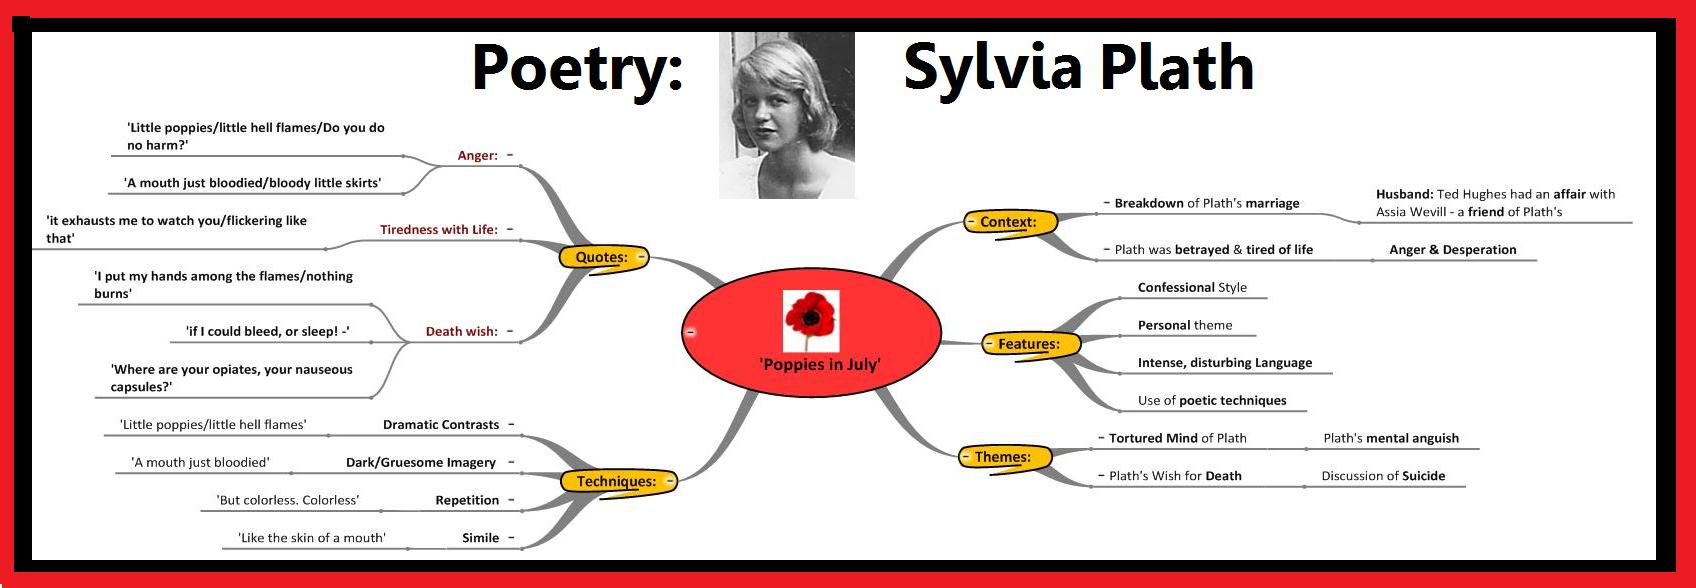 Essay ideas on silvia plath?